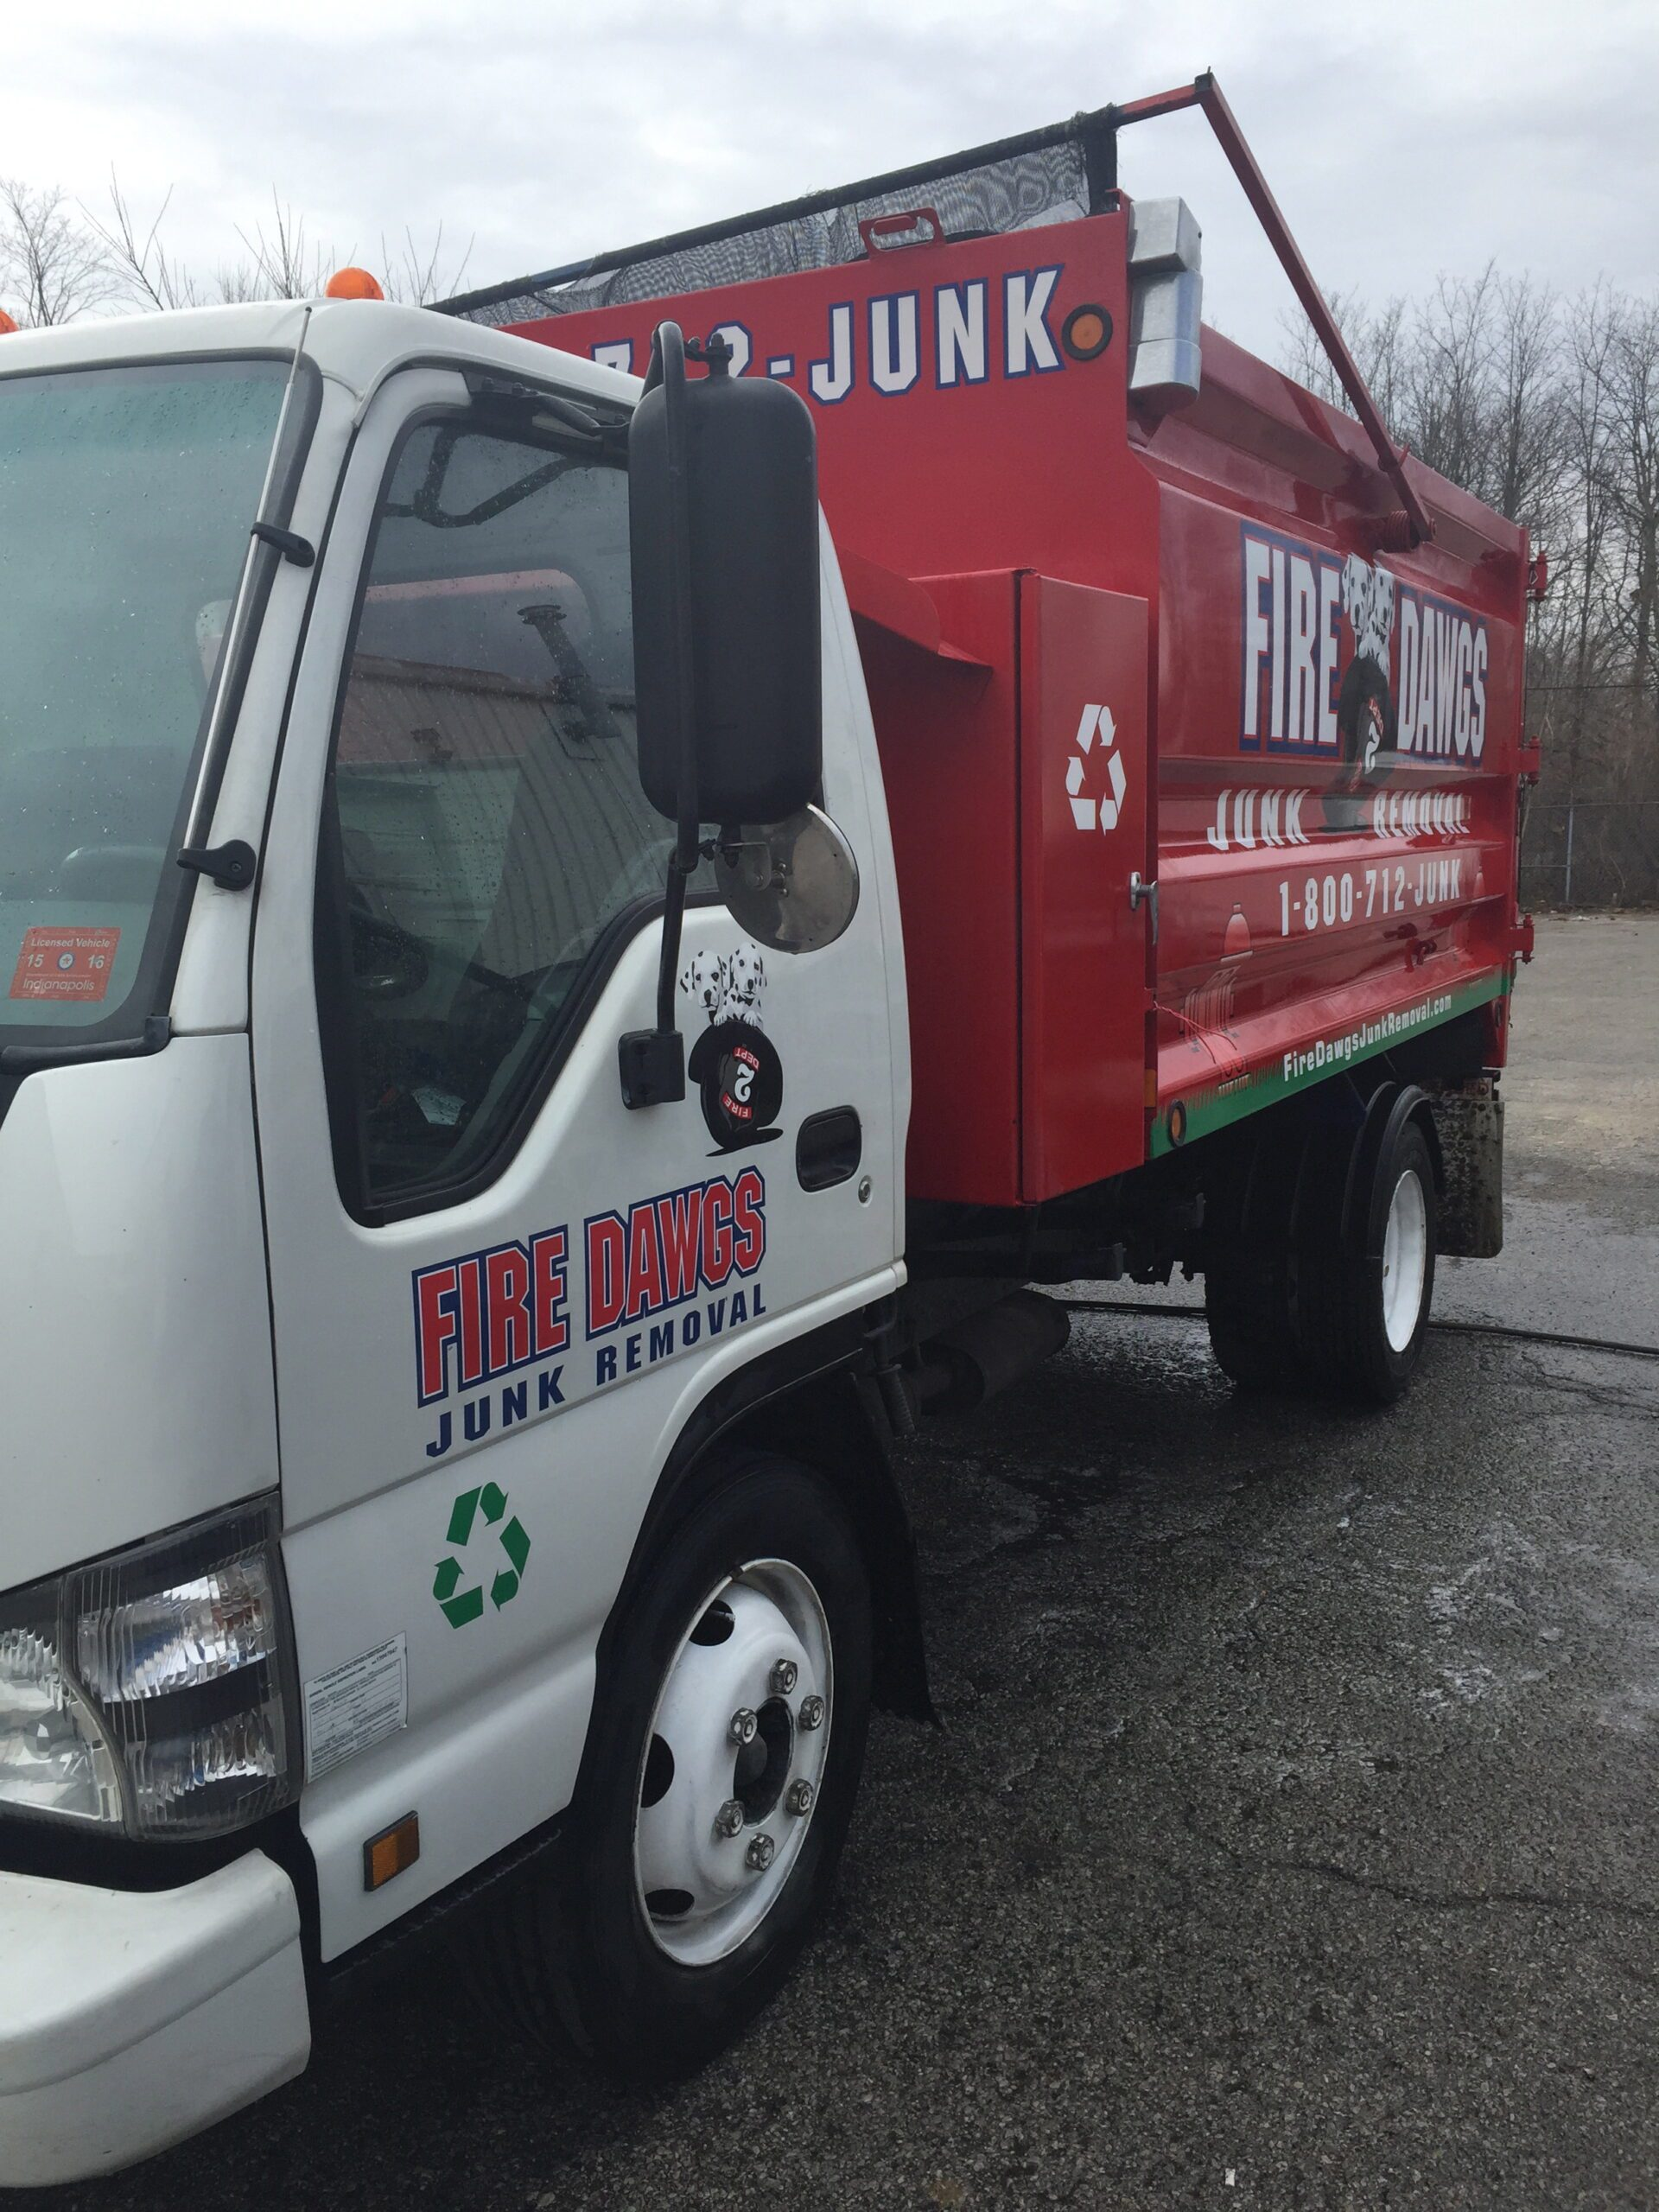 Average Cost of Junk Removal in Indianapolis